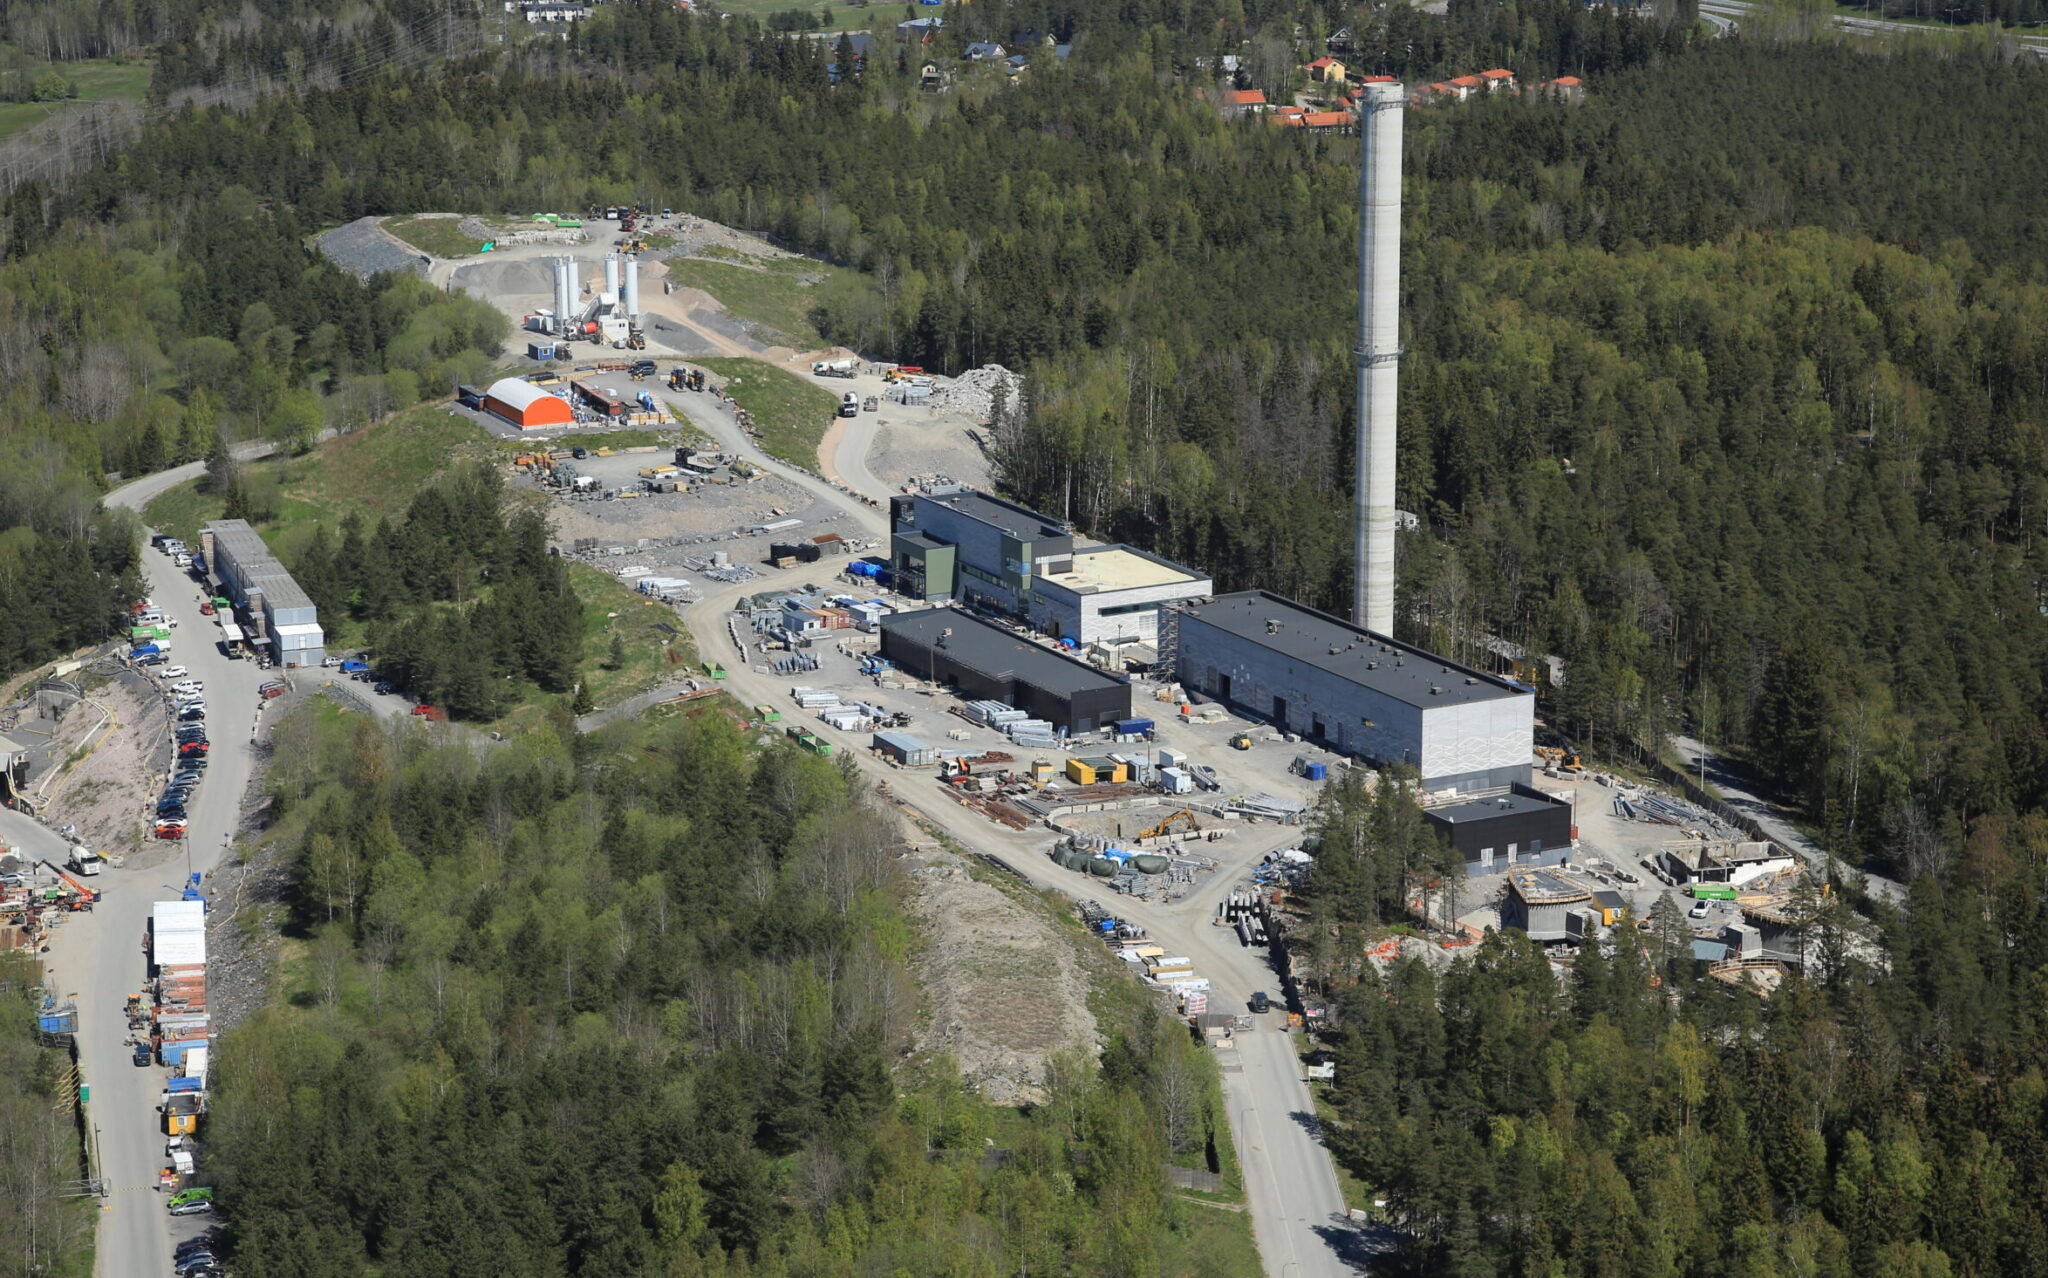 Picture taken by a drone of he Blominmäki wastewater treatment plant